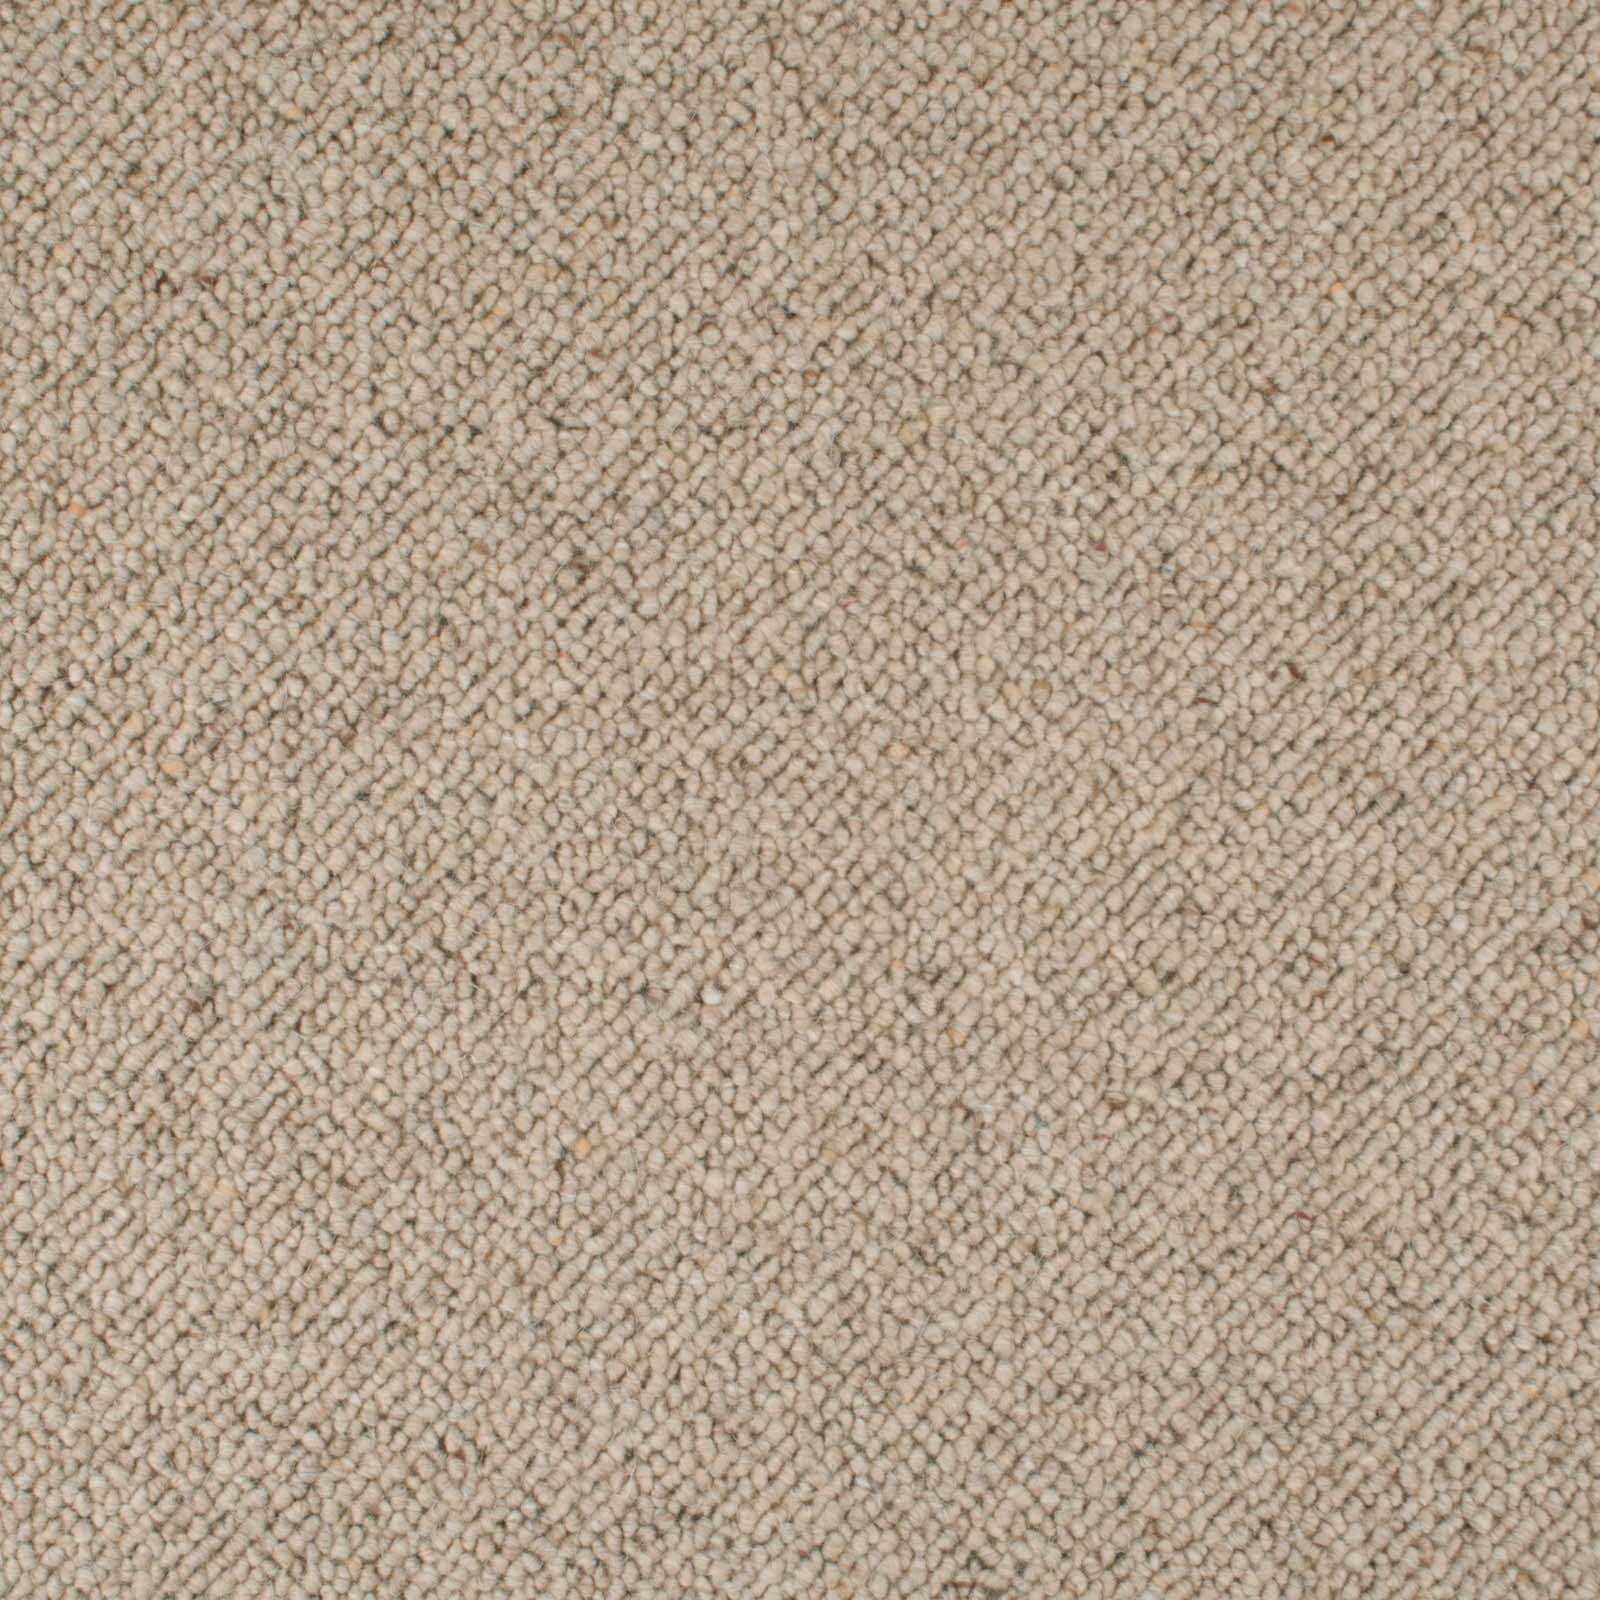 Beige Corsa Berber Deluxe Wool Carpet - Far